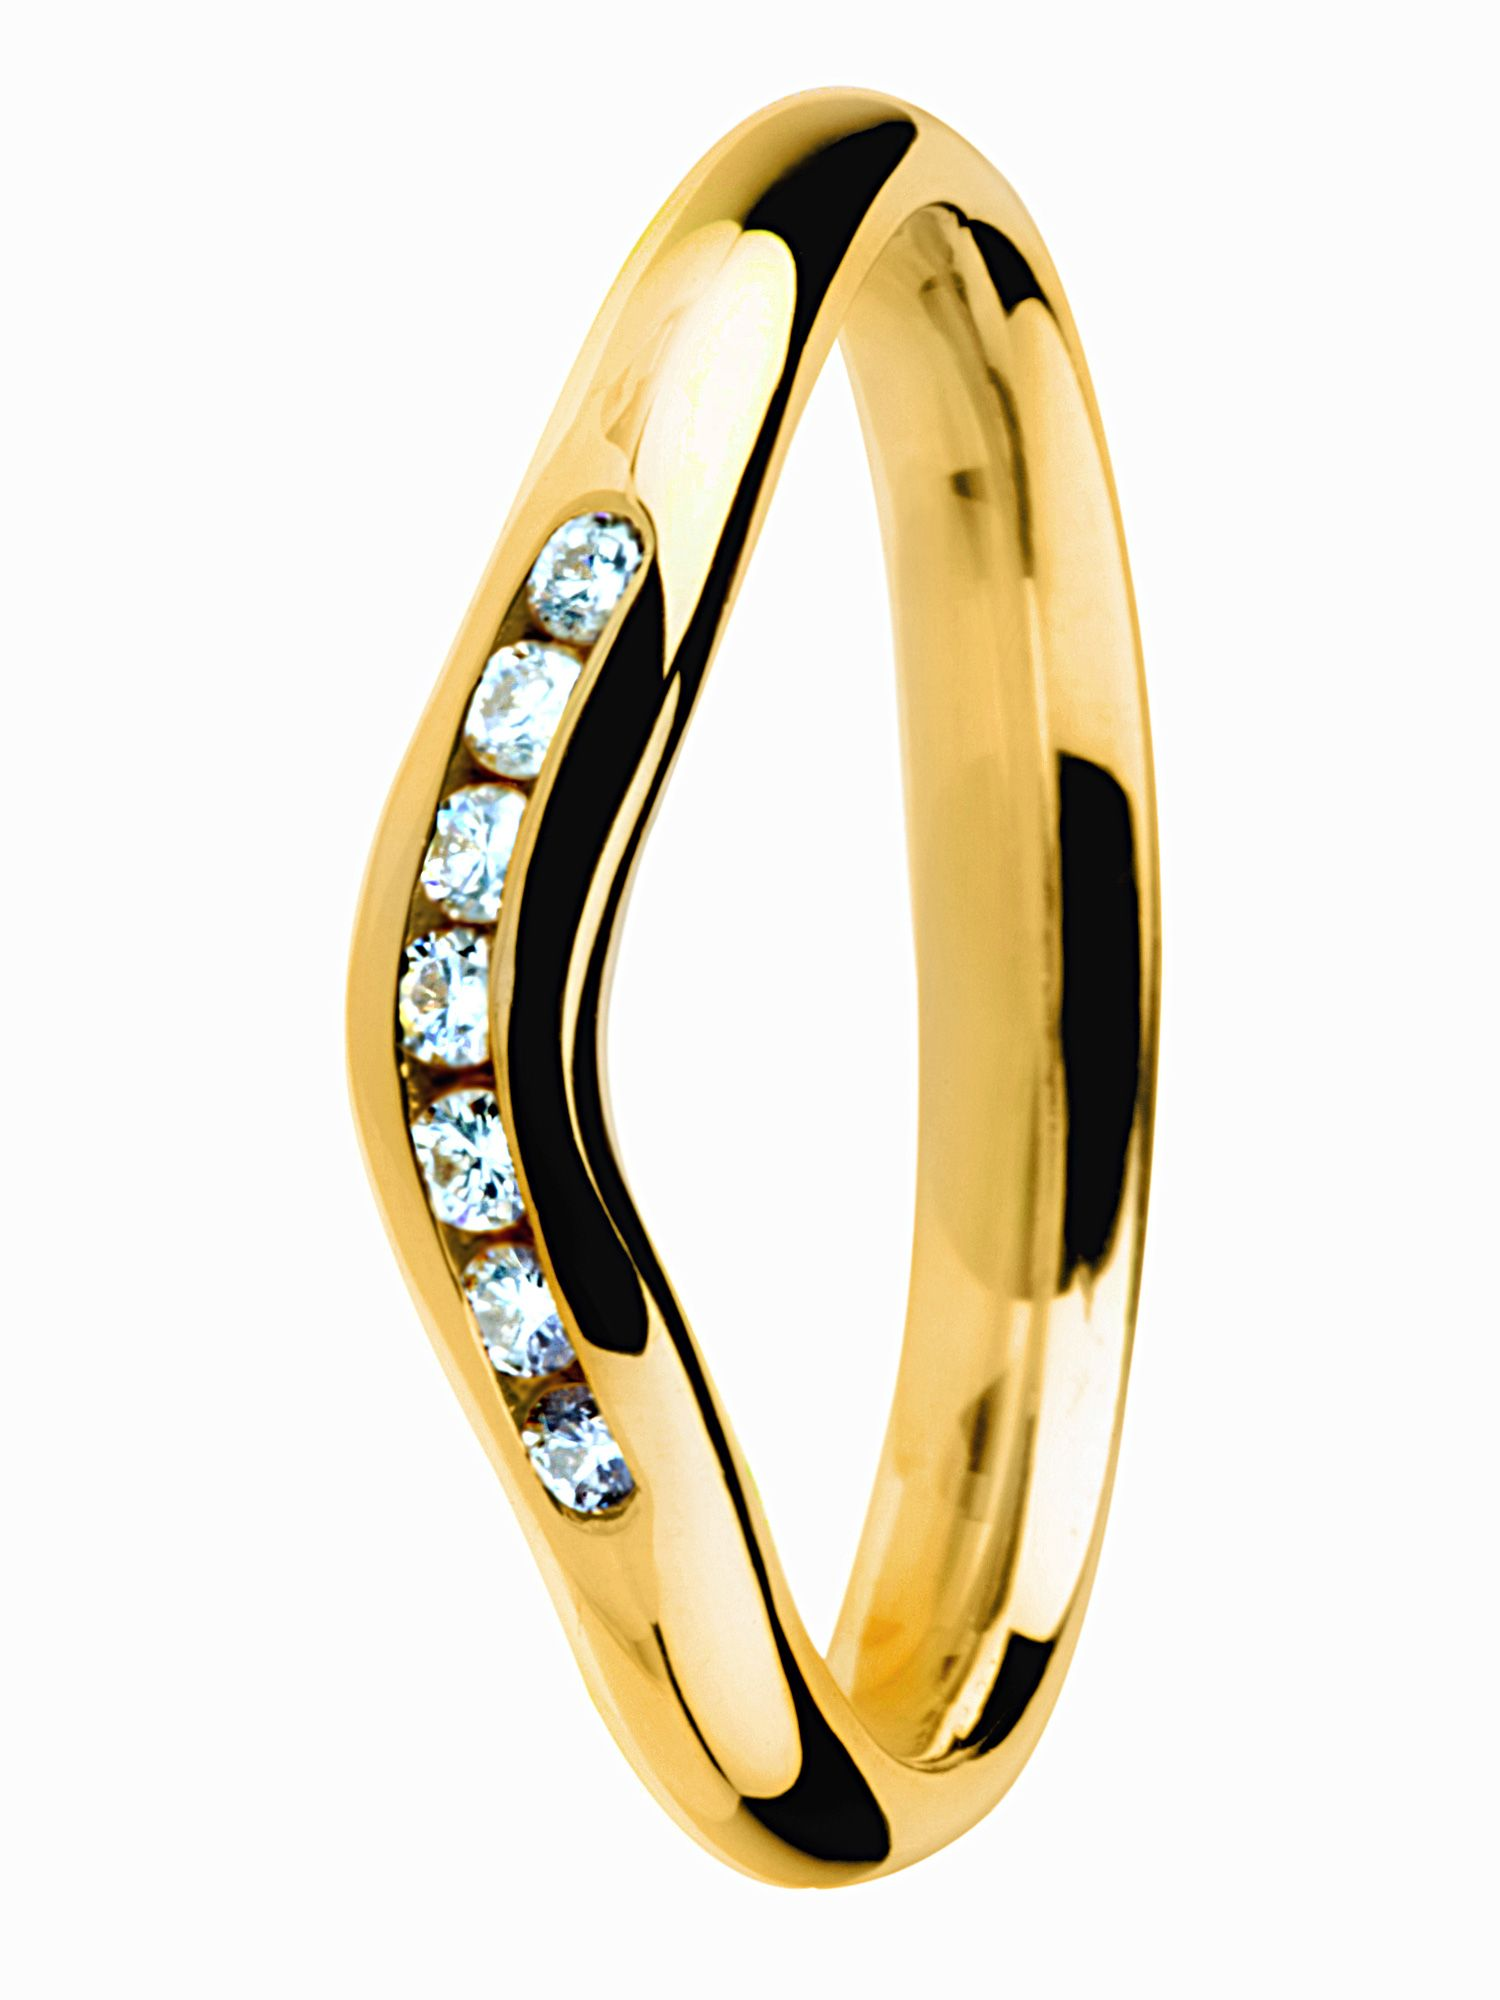 18ct yellow gold diamond wishbone wedding band